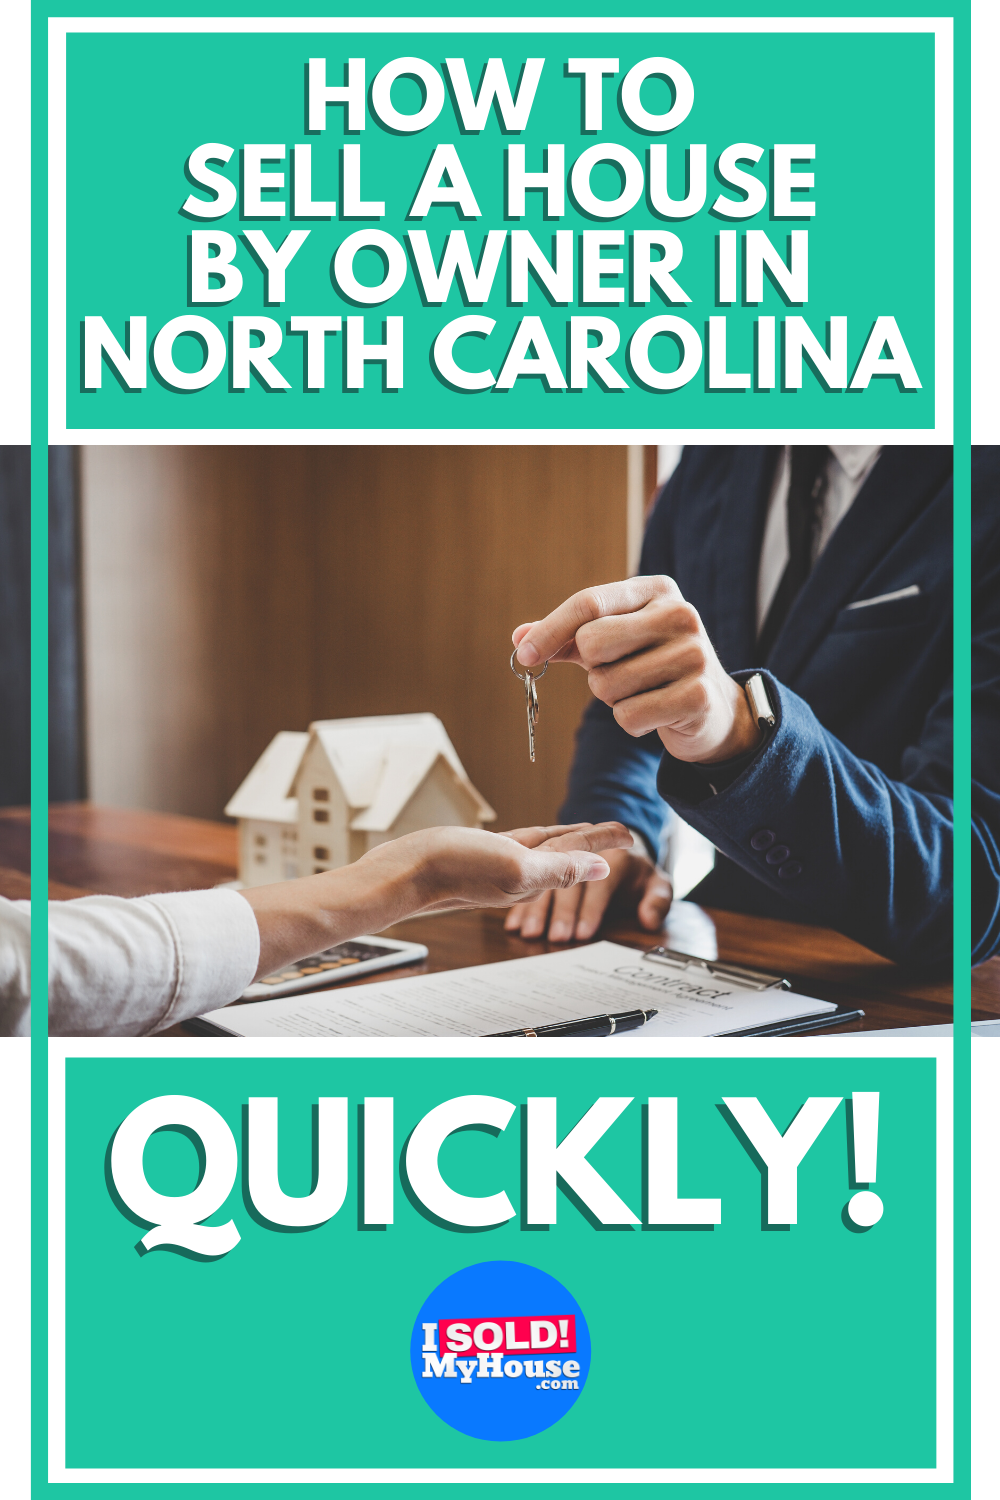 Sell A Home By Owner In North Carolina Quickly Selling House North Carolina Real Estate North Carolina